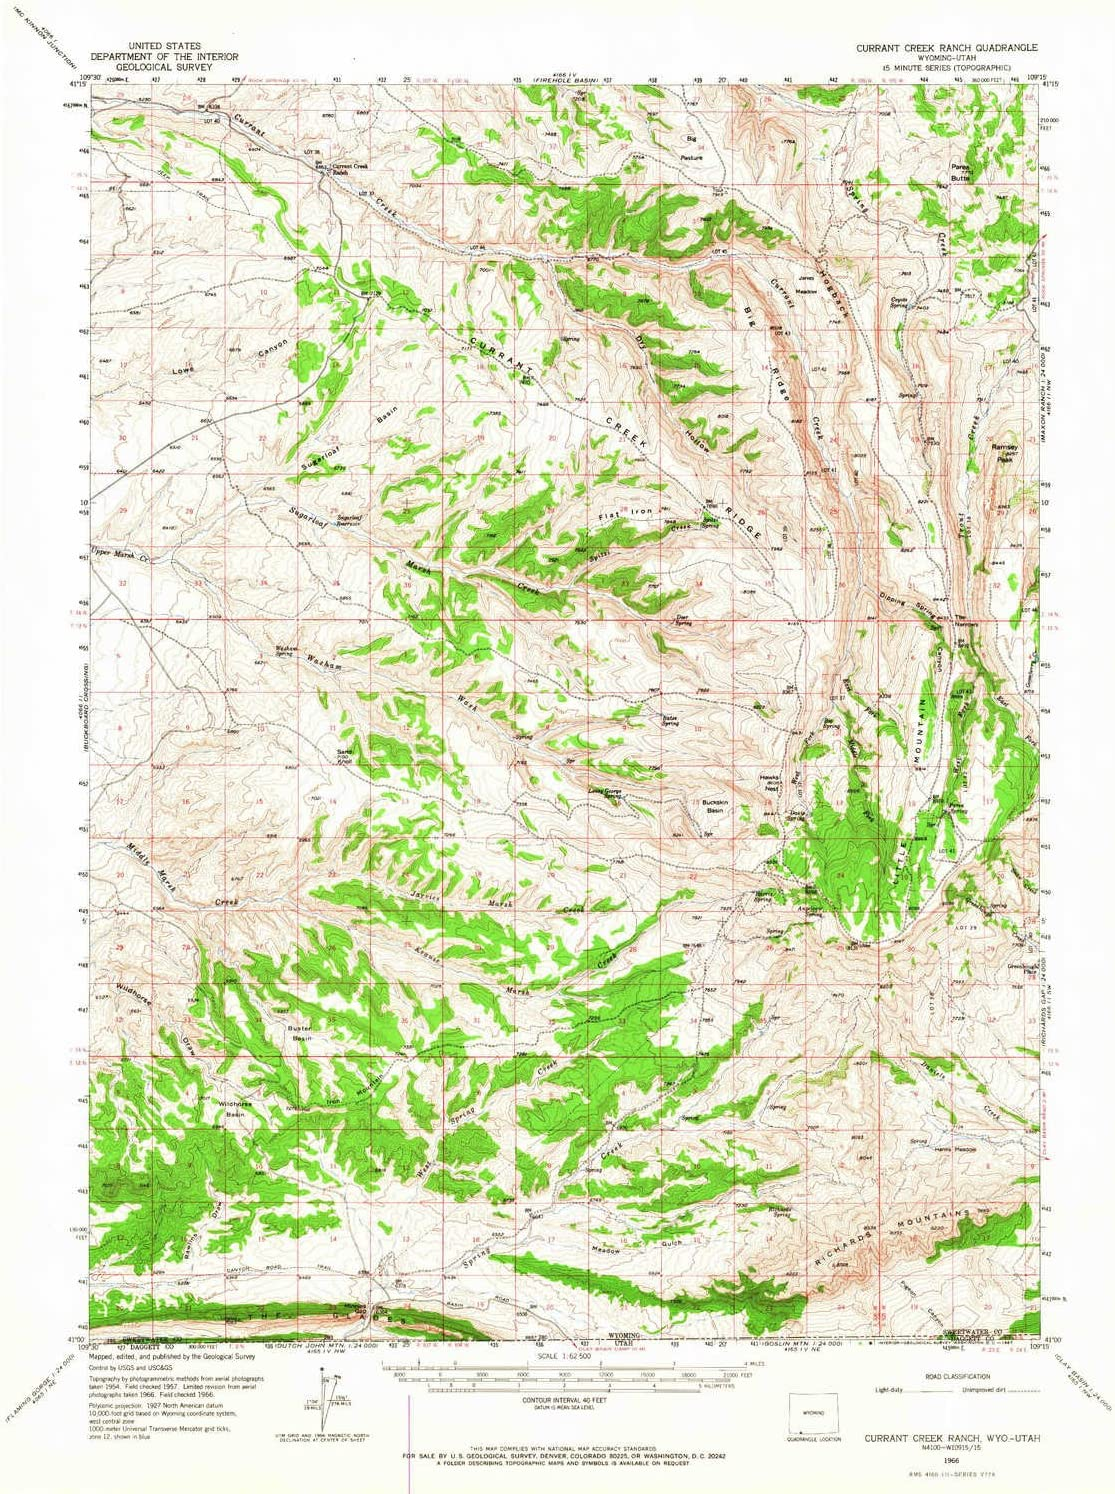 YellowMaps Currant Creek Ranch Bombing free shipping WY topo map wholesale 15 Scale X 1:62500